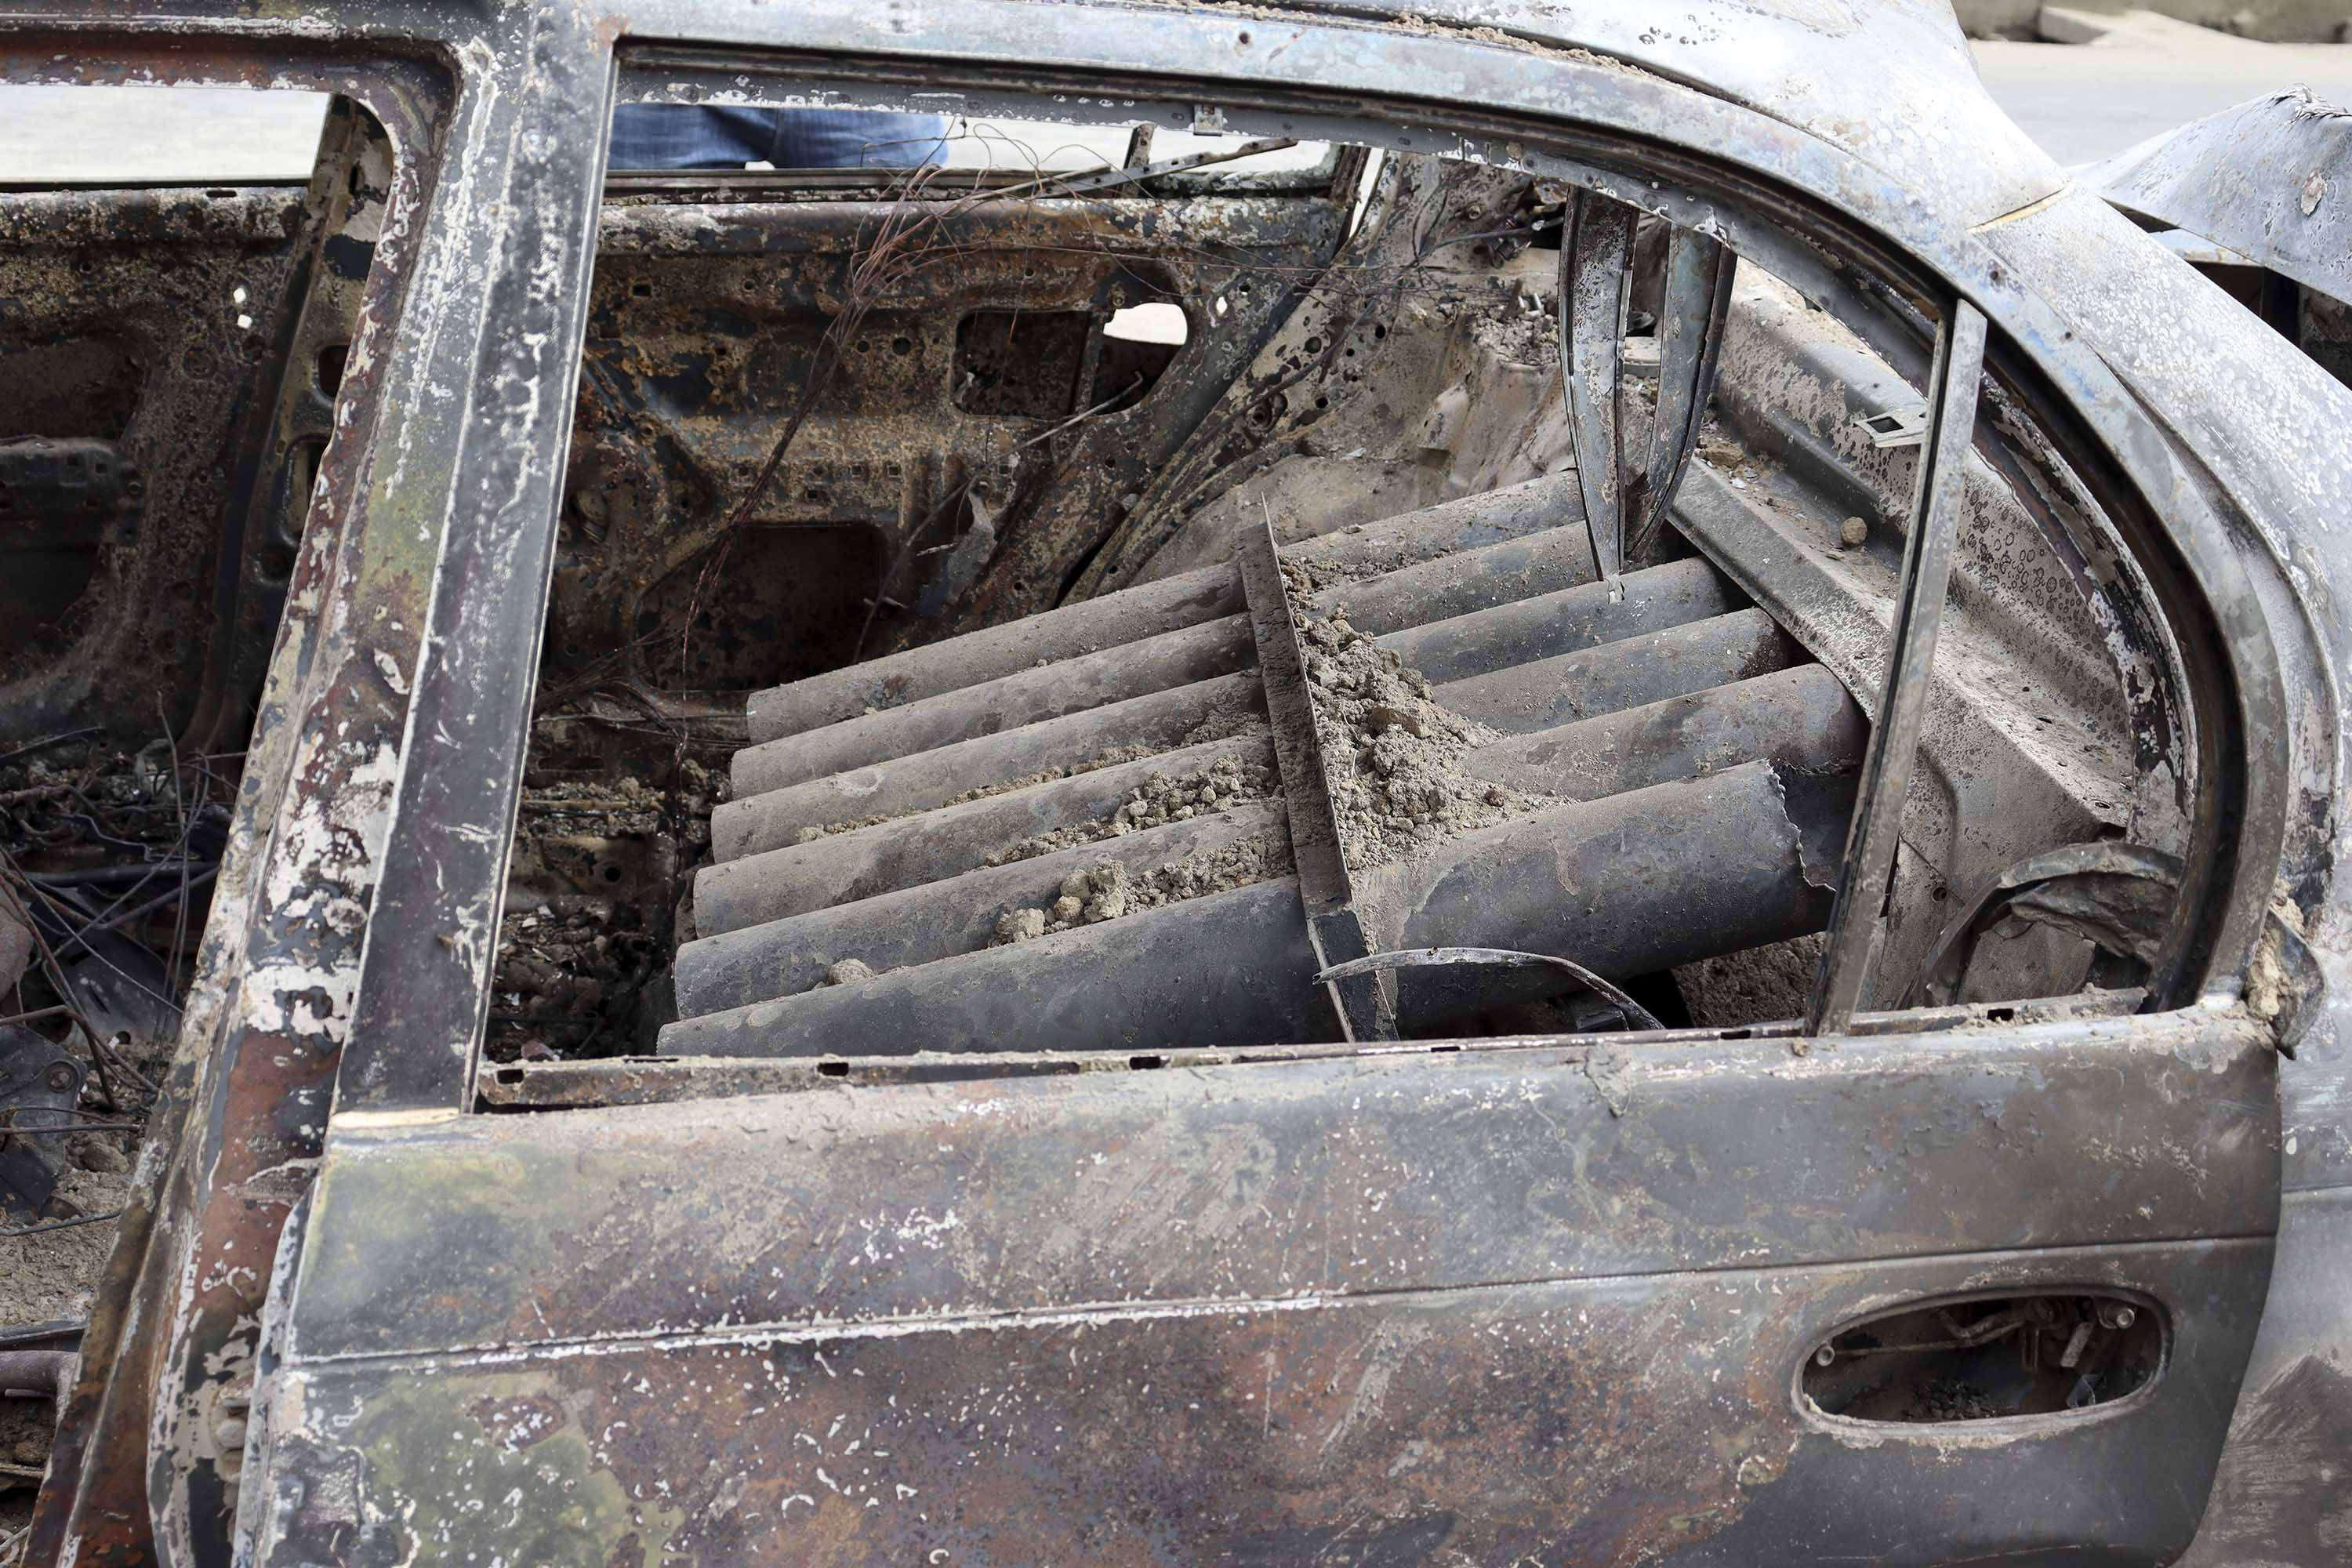 Rocket launcher tubes are seen inside the destroyed vehicle.